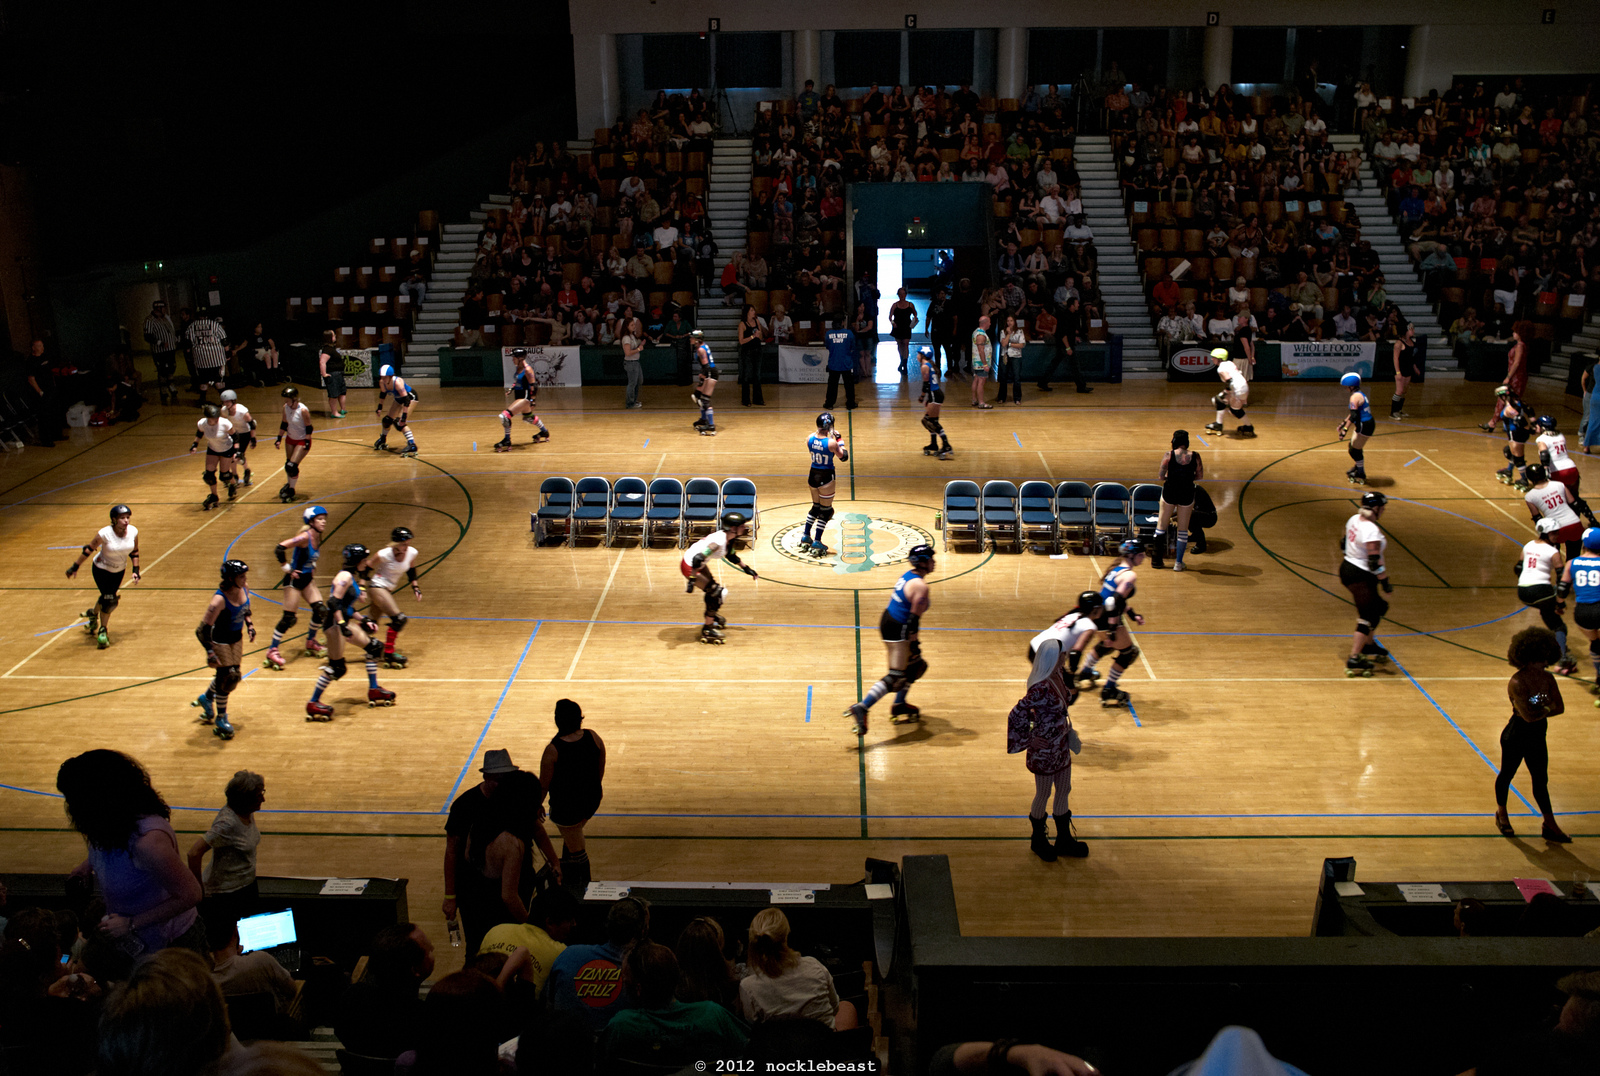 Gothenburg needs a Roller Derby venue!